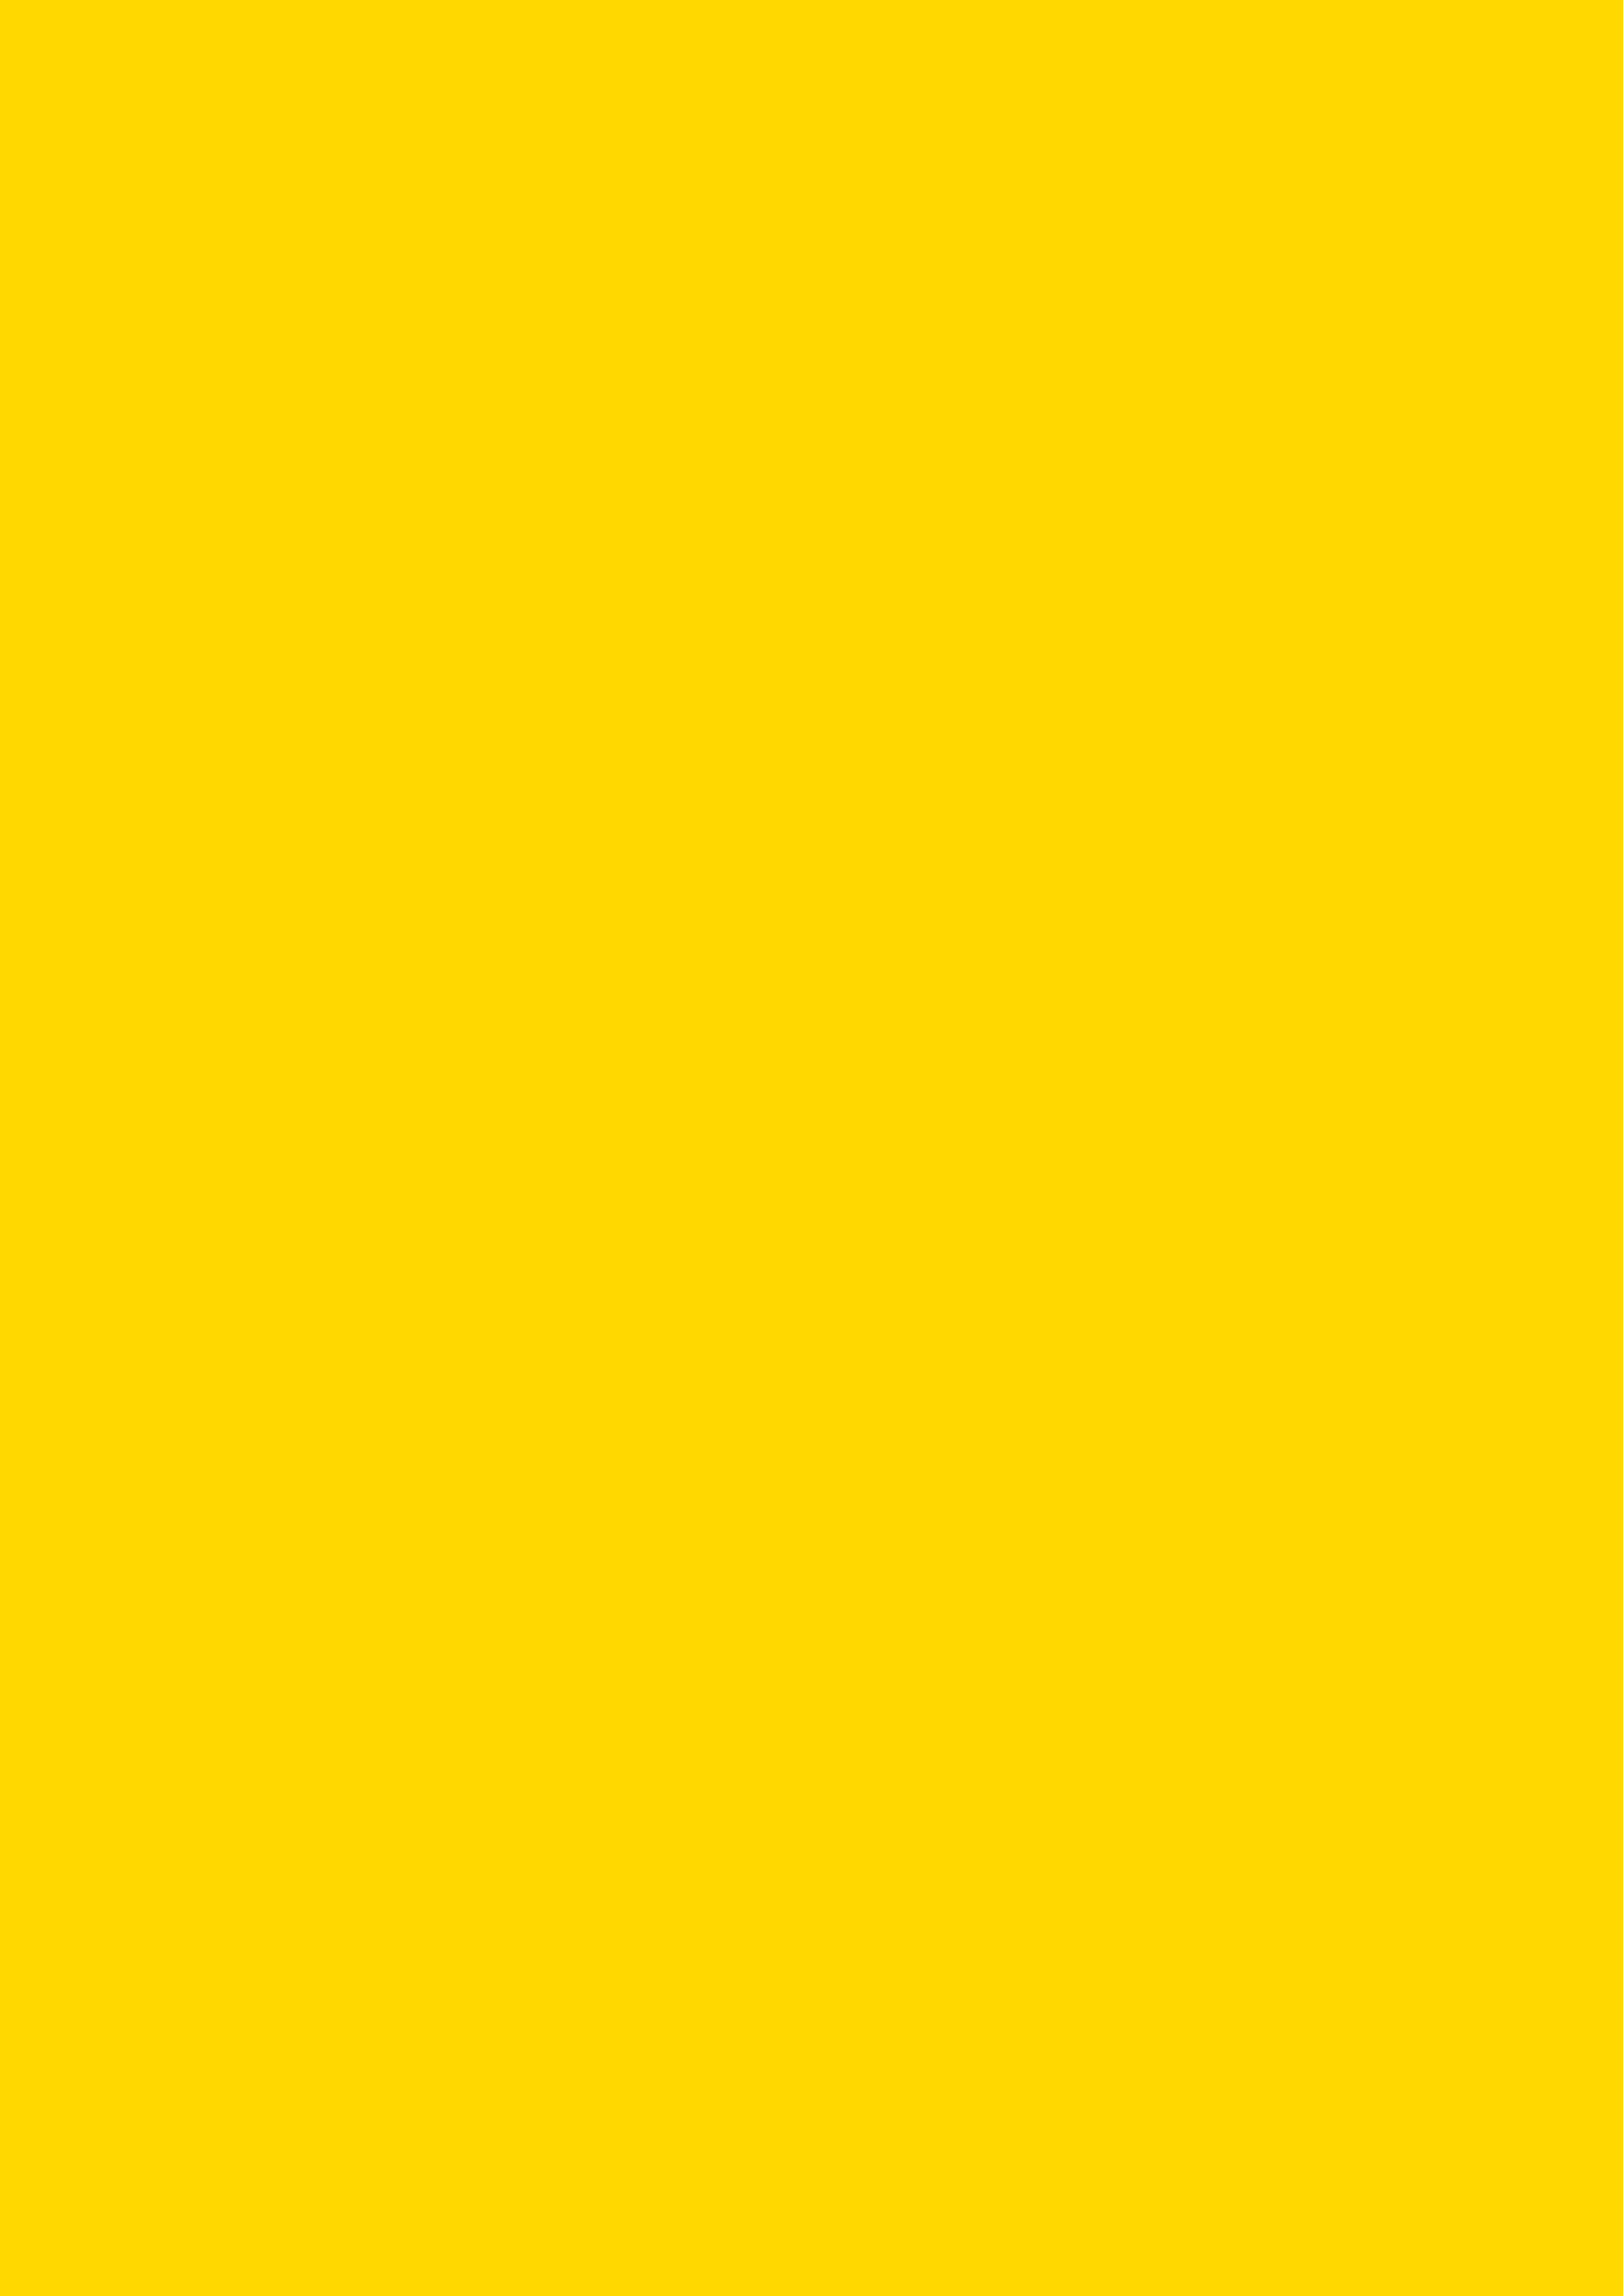 2480x3508 School Bus Yellow Solid Color Background